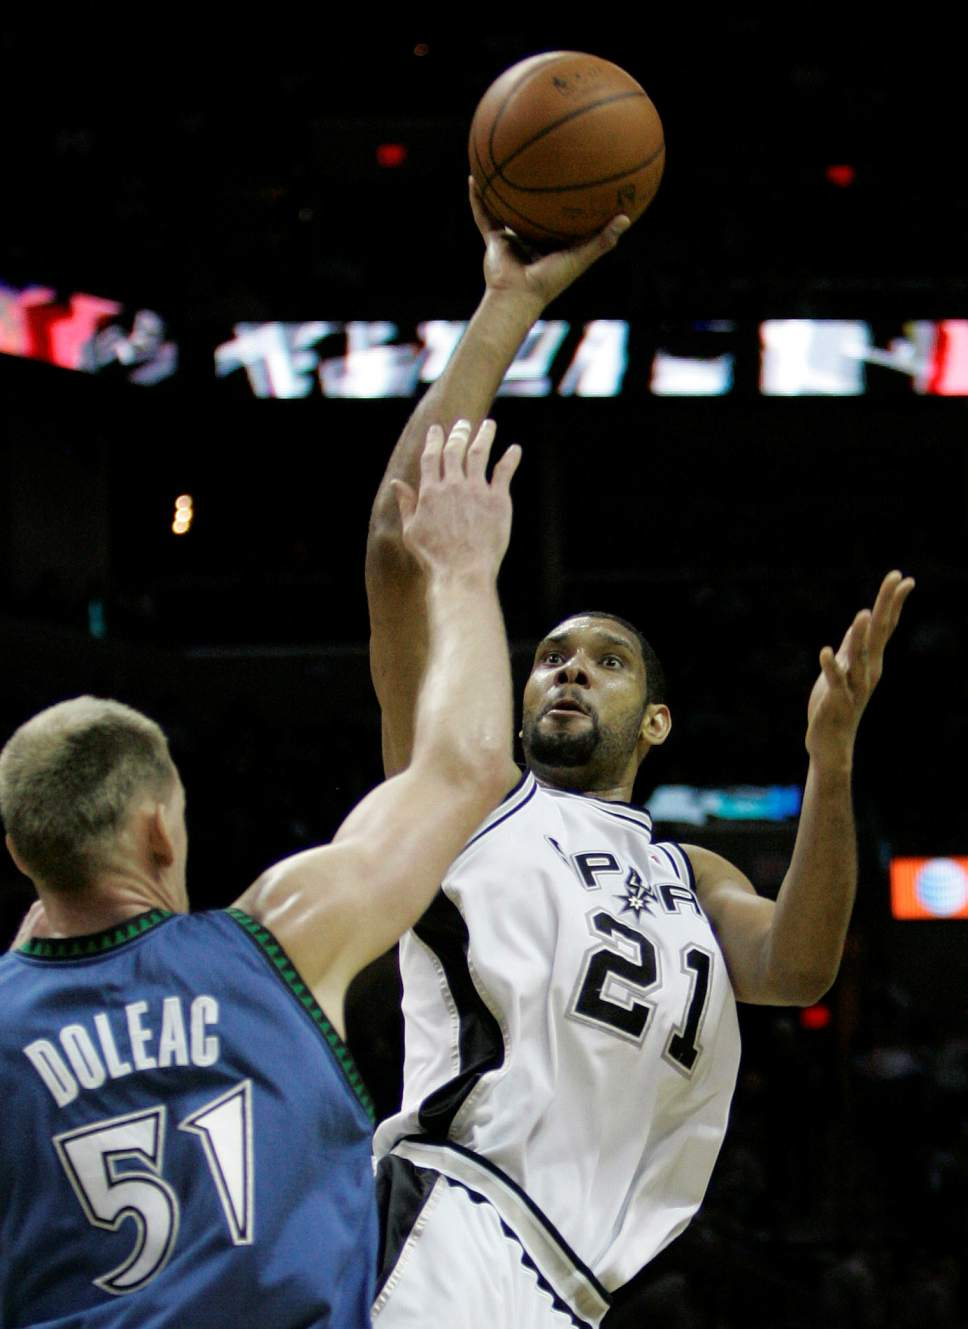 San Antonio Spurs forward Tim Duncan (21) shoots over Minnesota Timberwolves  center Michael Doleac (51) during the third quarter of their NBA basketball game in San Antonio, Saturday, Jan. 12, 2008. San Antonio won 105-88.  (AP Photo/Eric Gay)